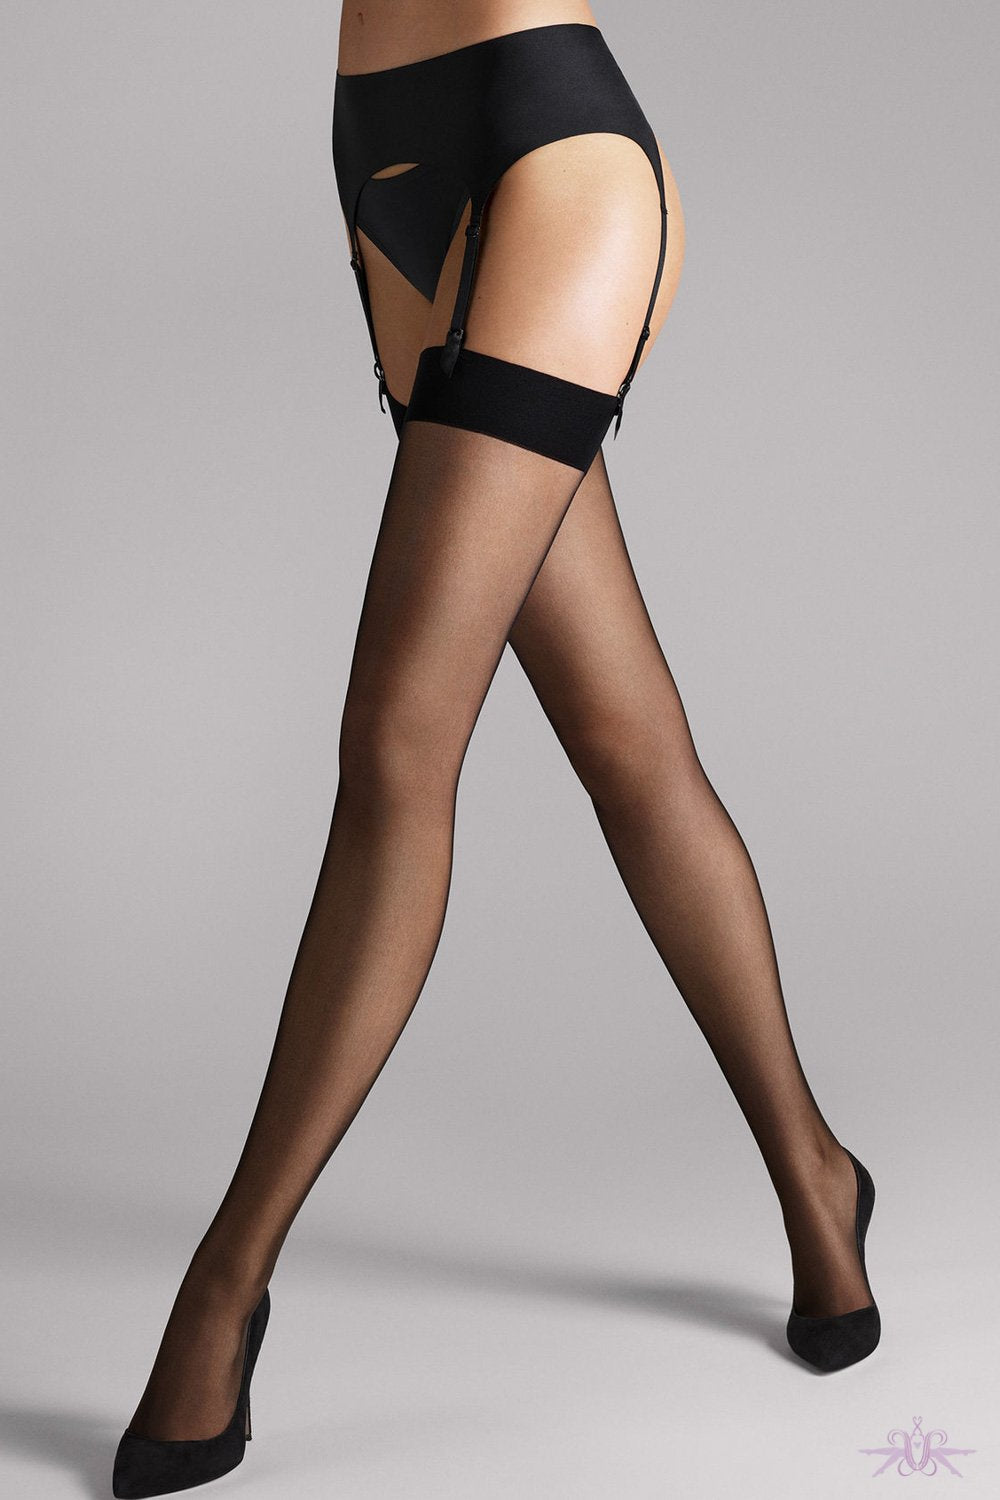 e5f08d0e1 Wolford Satin Stocking Belt at The Hosiery Box  Luxury Stockings ...